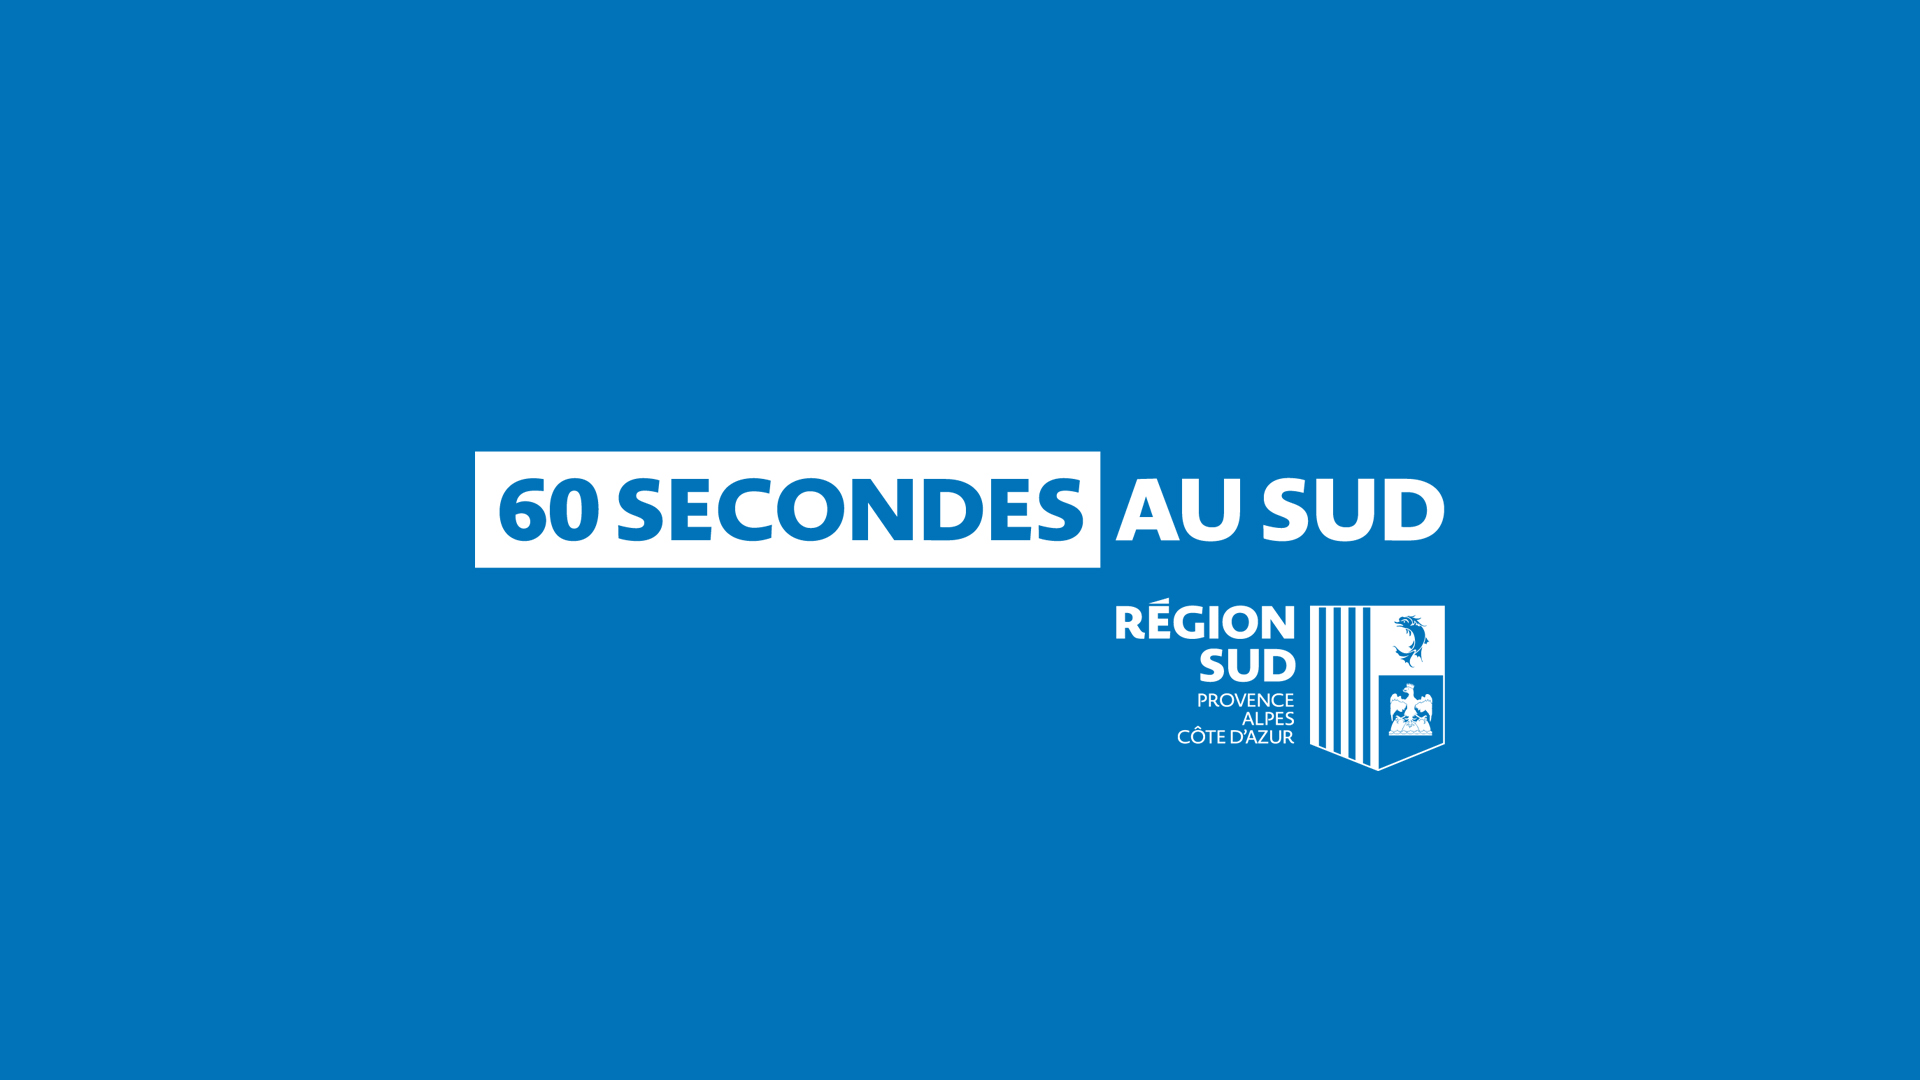 60-secondes-au-sud-:-revivez-en-video-les-moments-forts-de-ce-mois-de-mai-en-region-sud